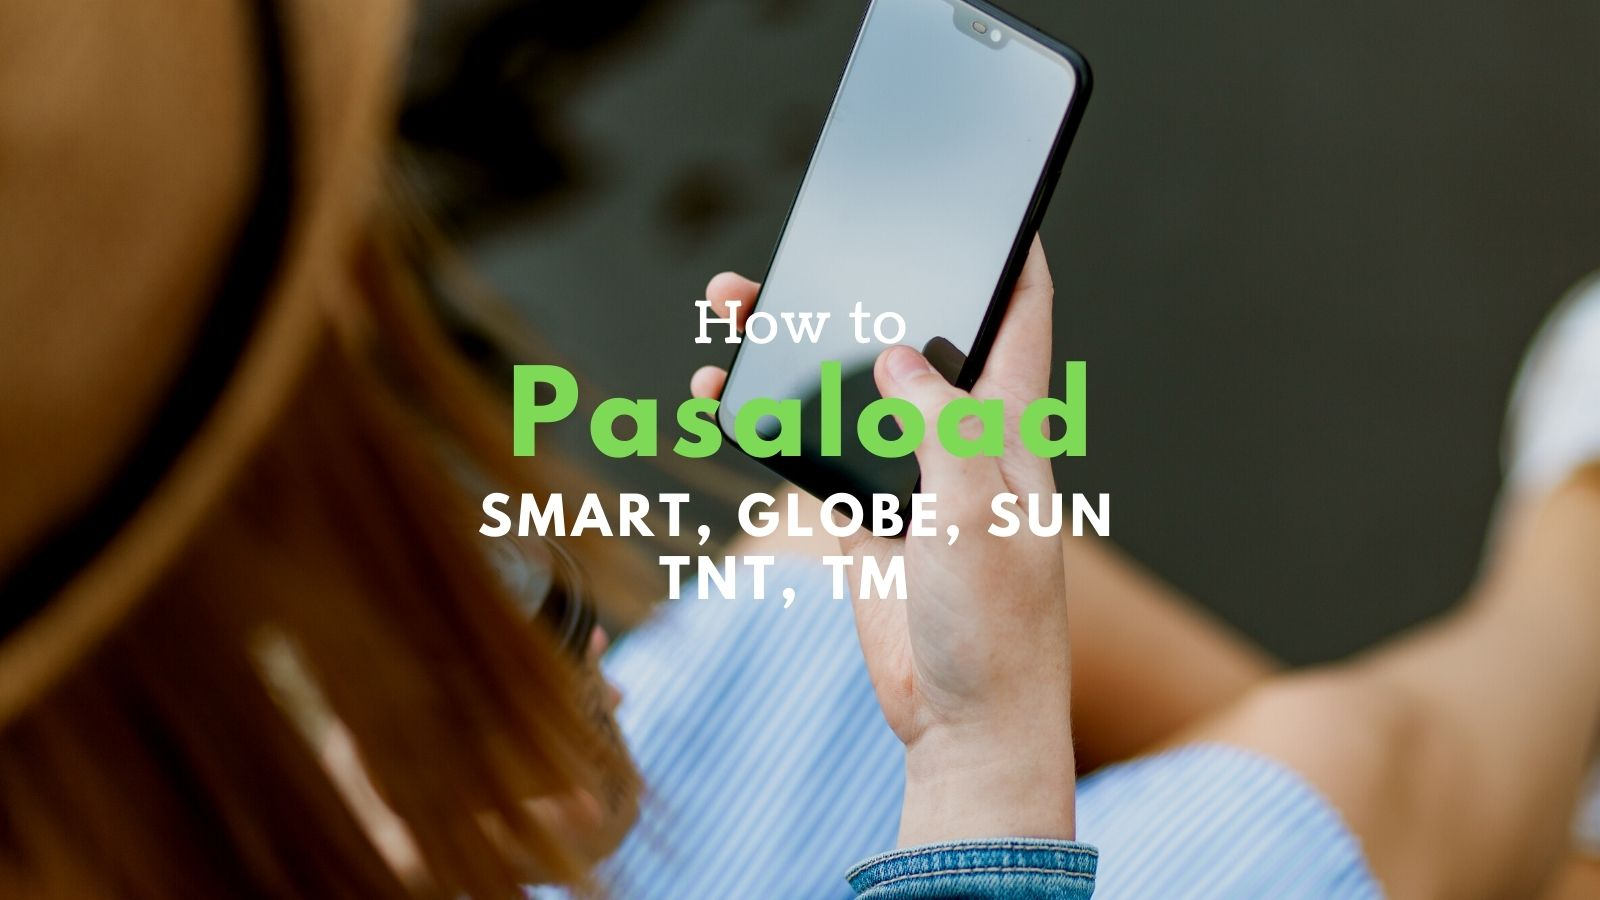 how to pasaload smart globe tm sun tnt